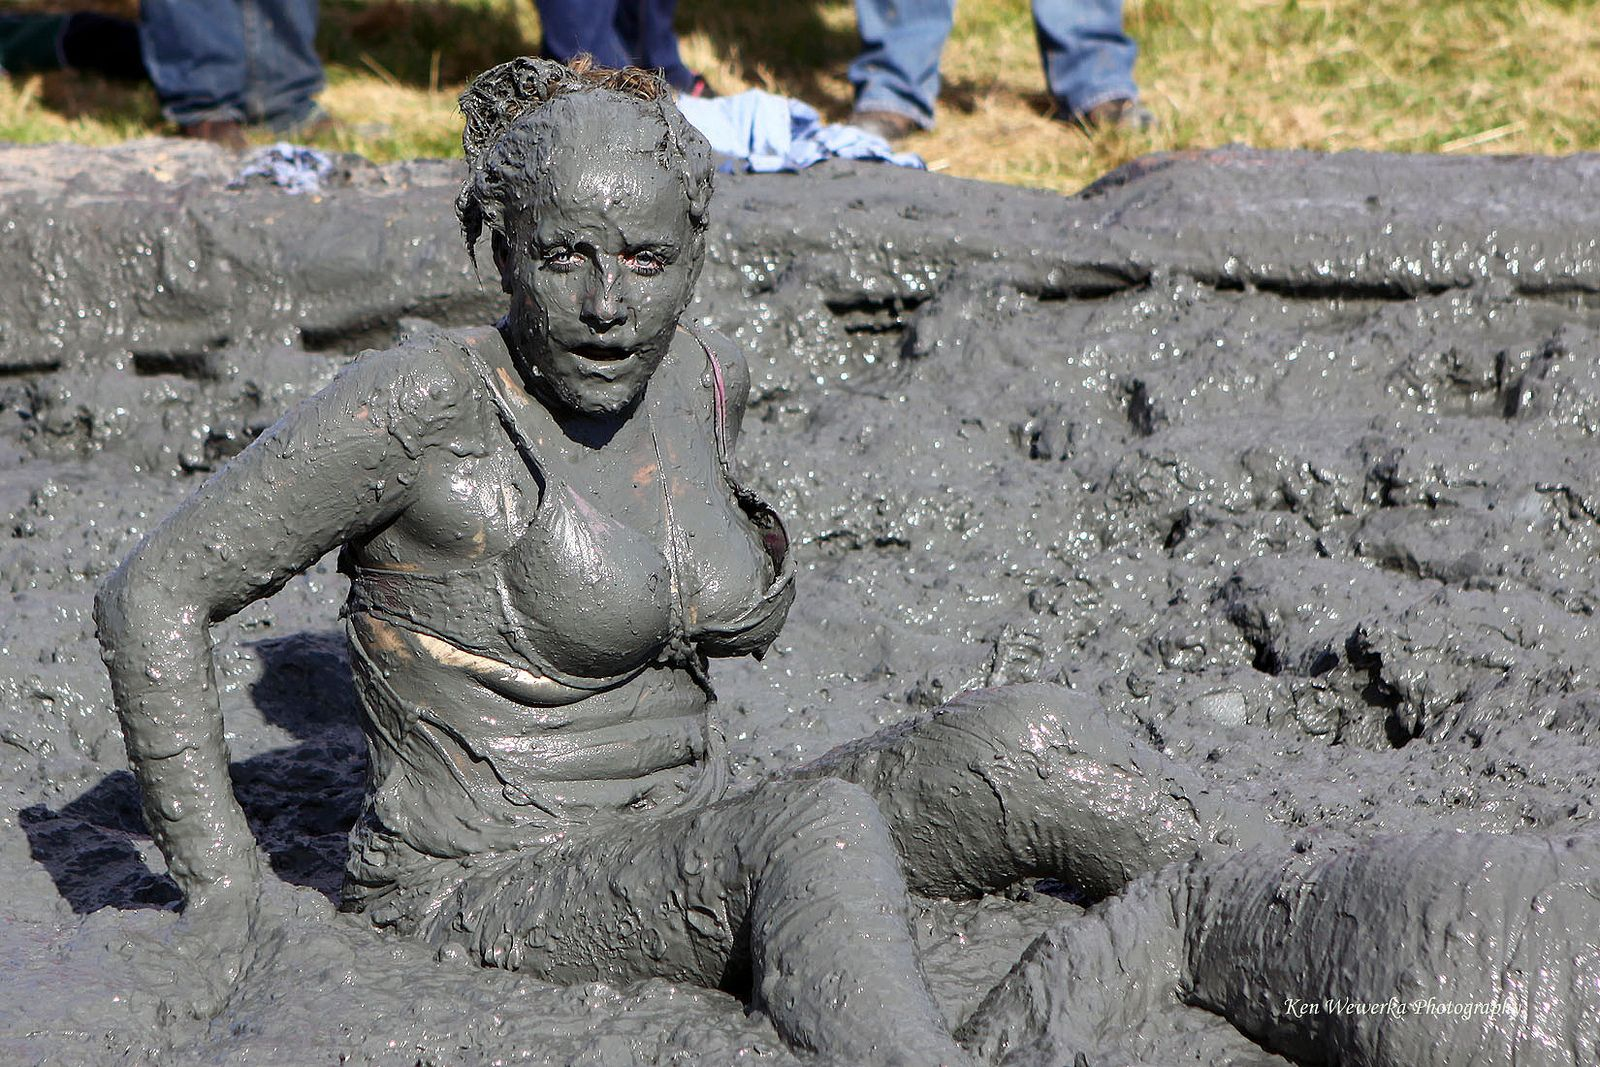 Mud wresting girls